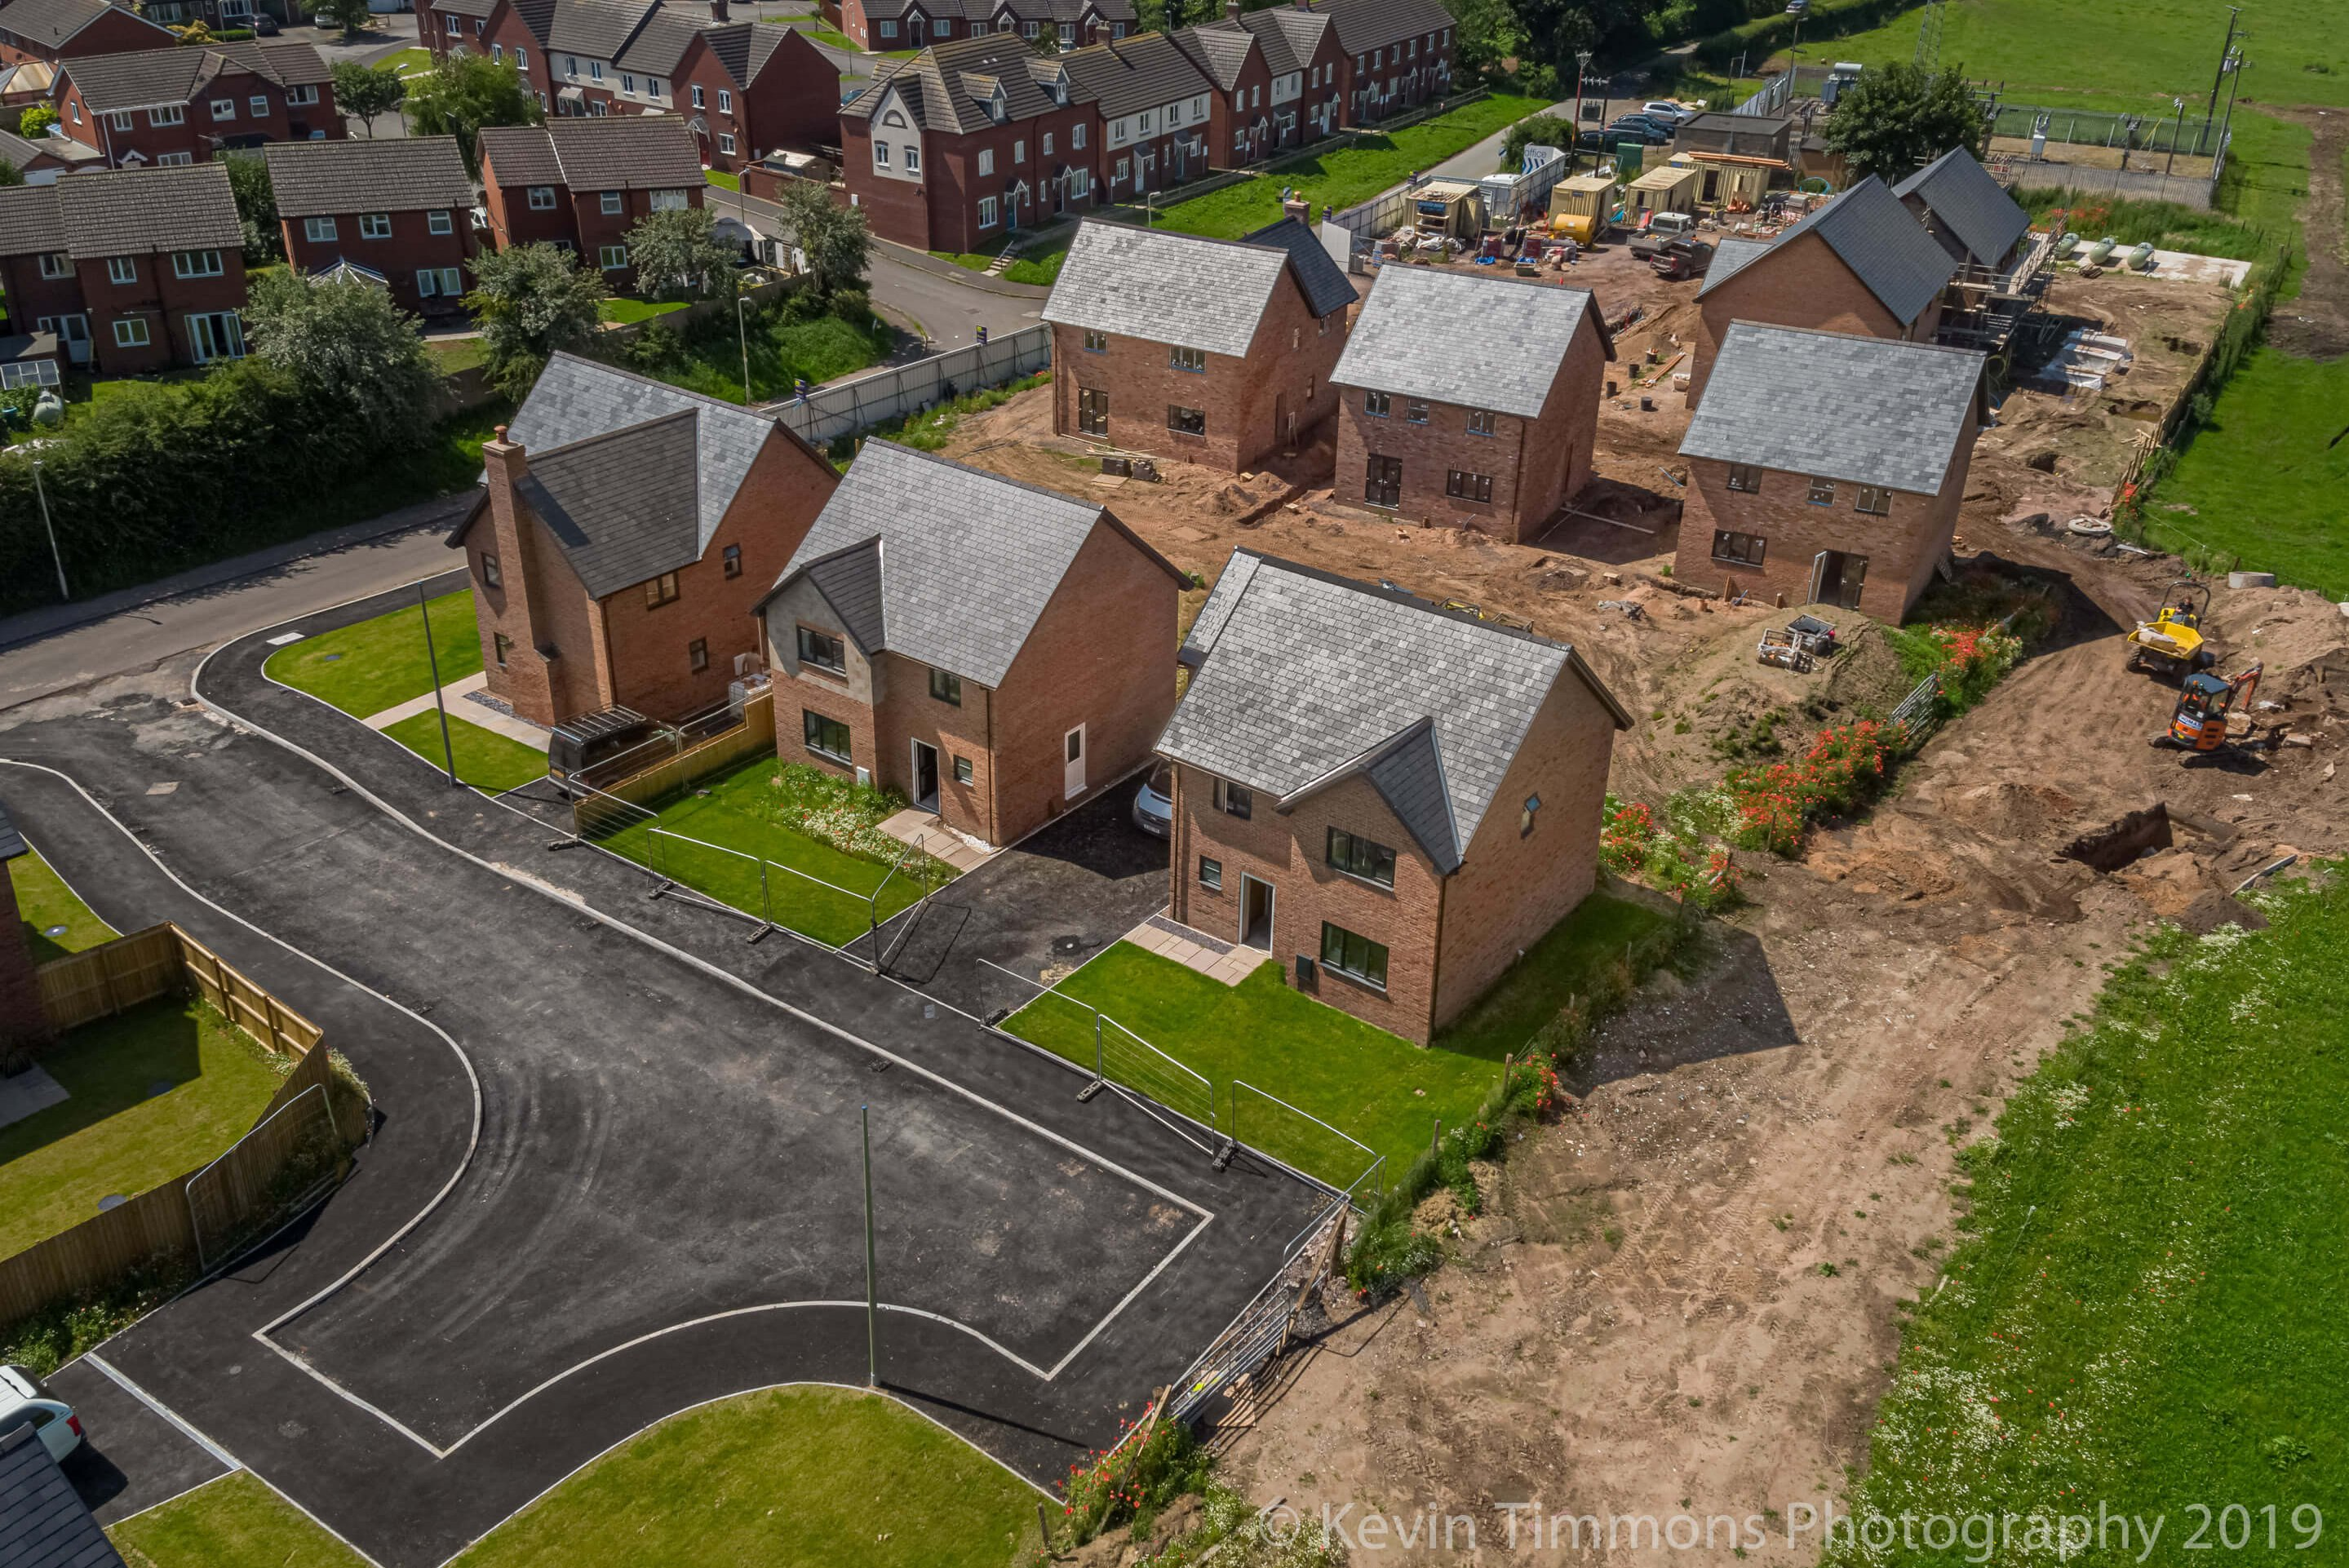 Aerial drone image of housing development in the countryside